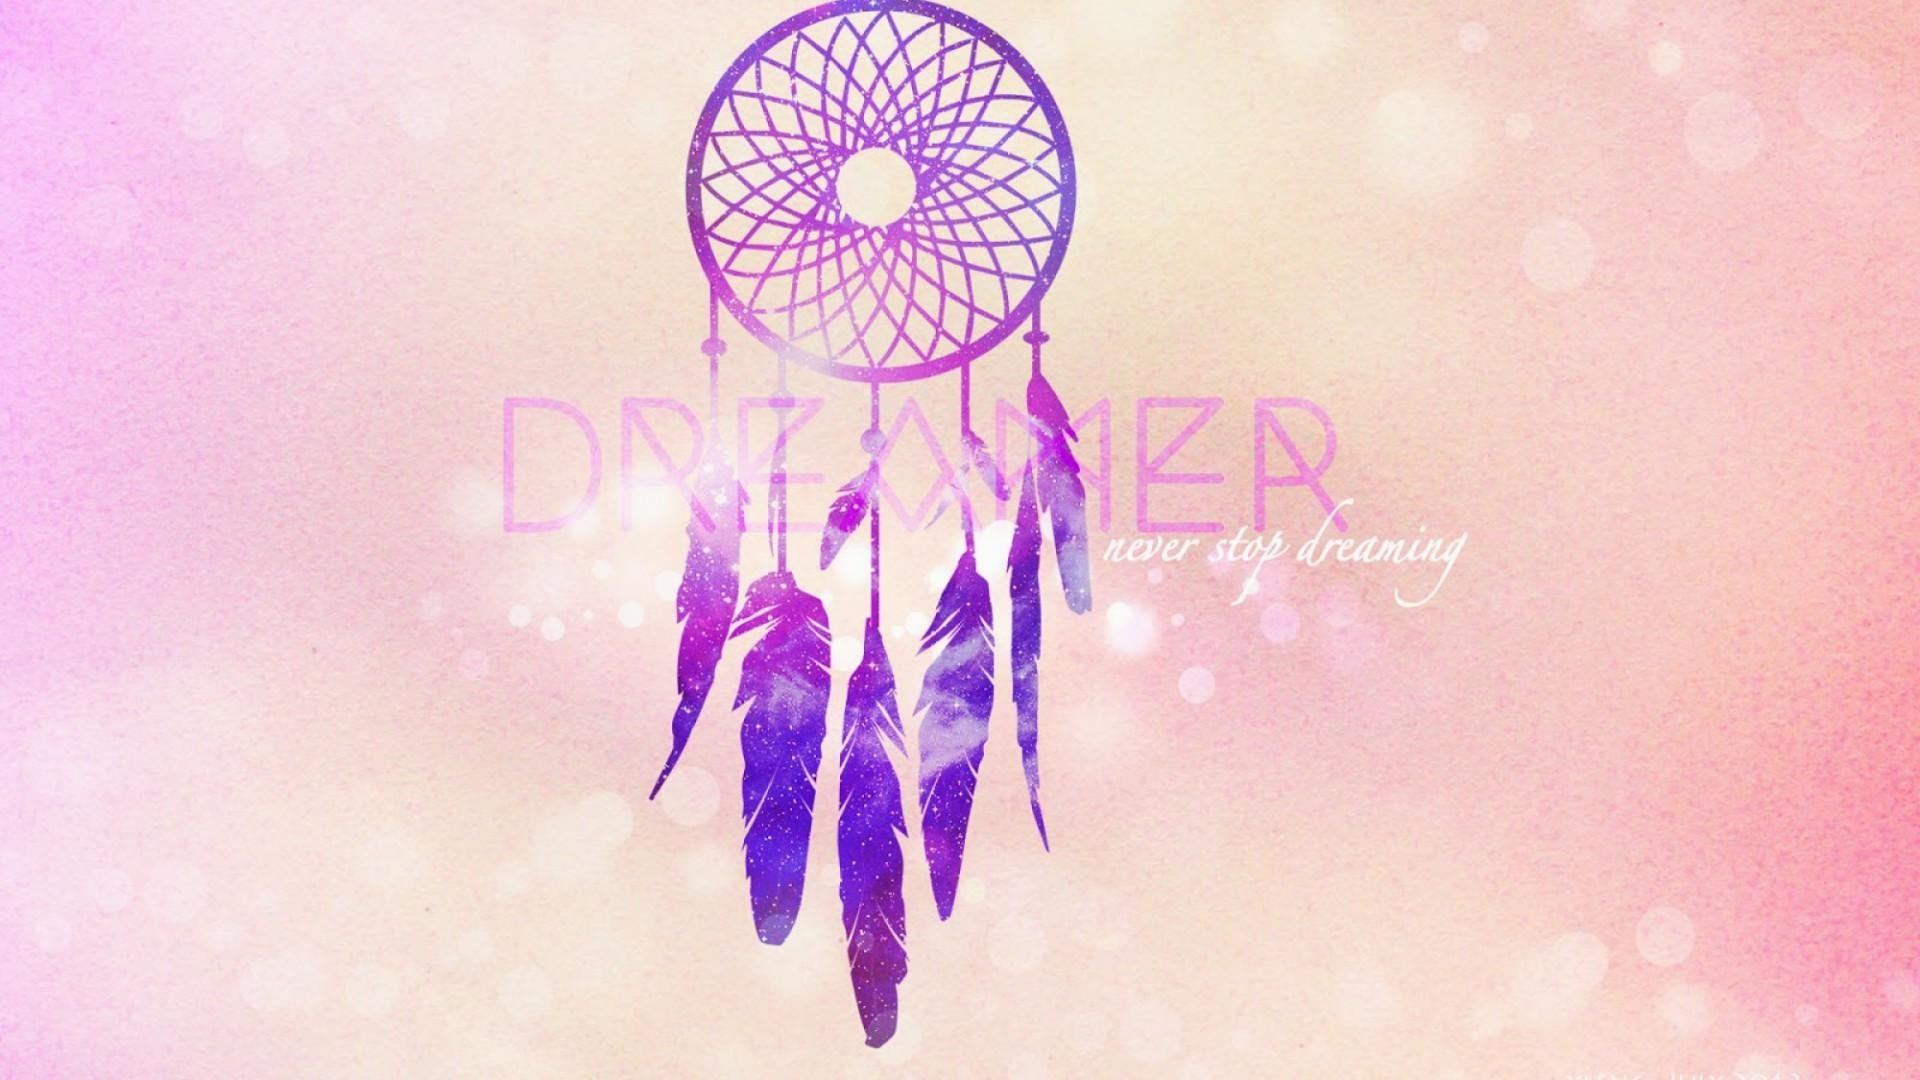 Dreamcatcher-with-quote-1080p-wallpapers-1920×1080